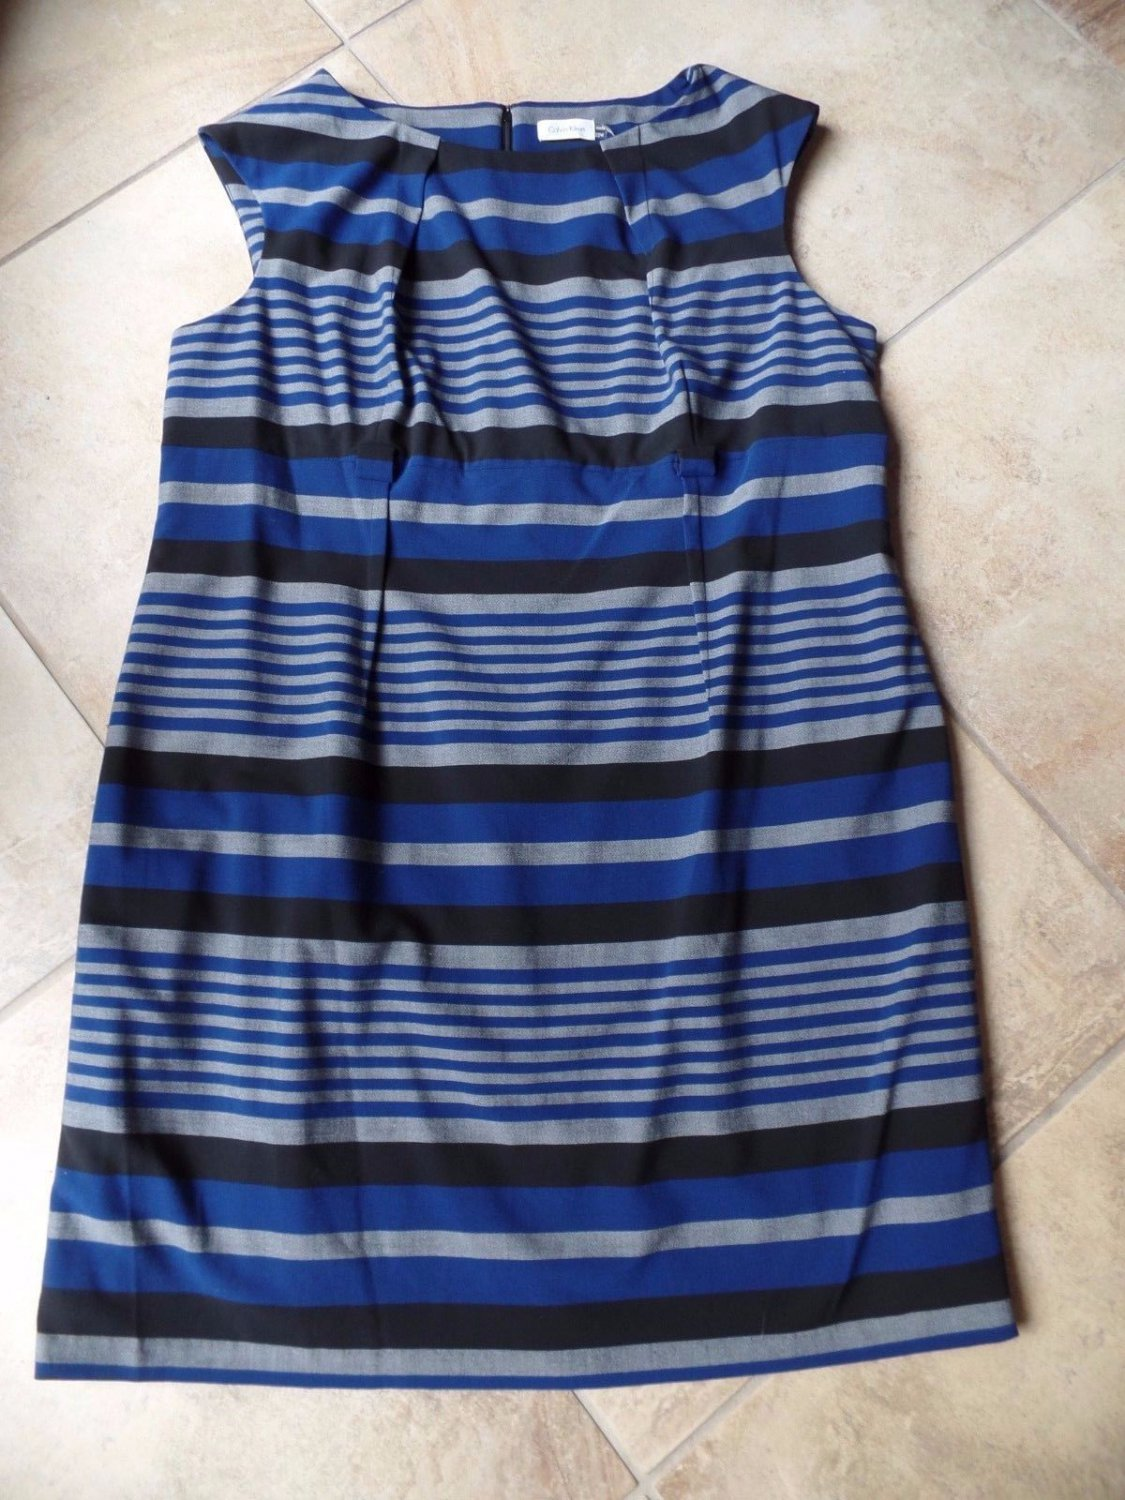 CALVIN KLEIN Blue/Black/Gray Striped  Sleeveless Sheath Dress 22W